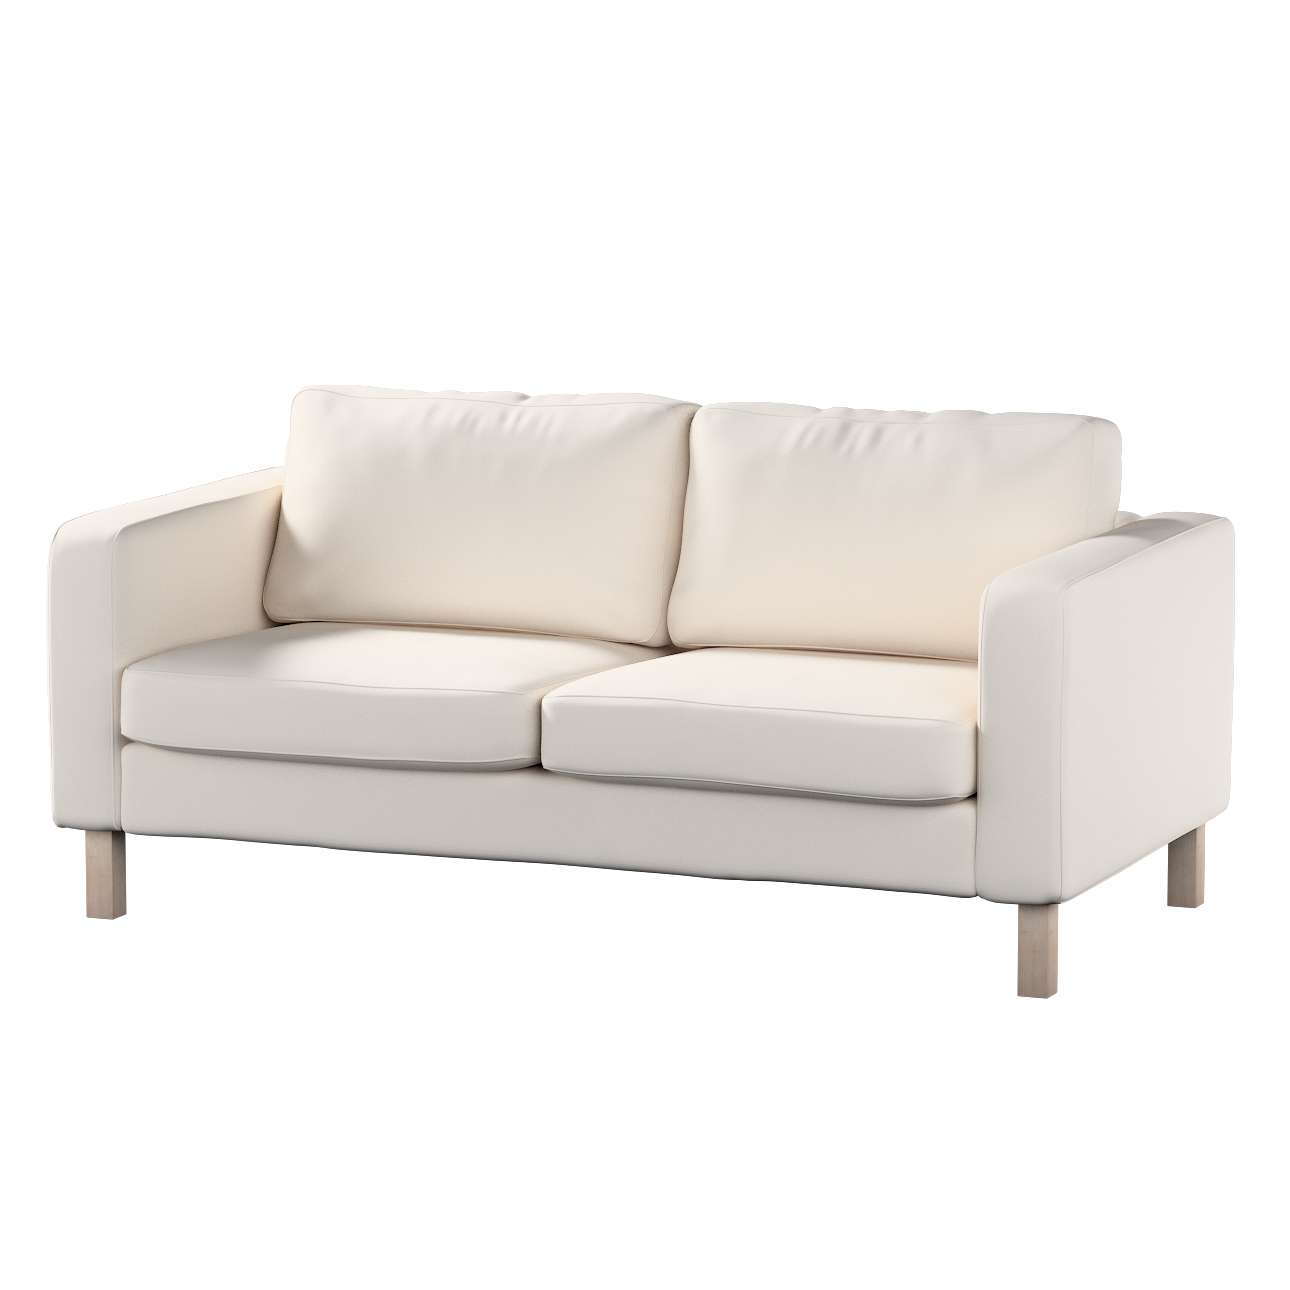 New Ikea Karlstad Sofa Covers With 2 Years Warranty